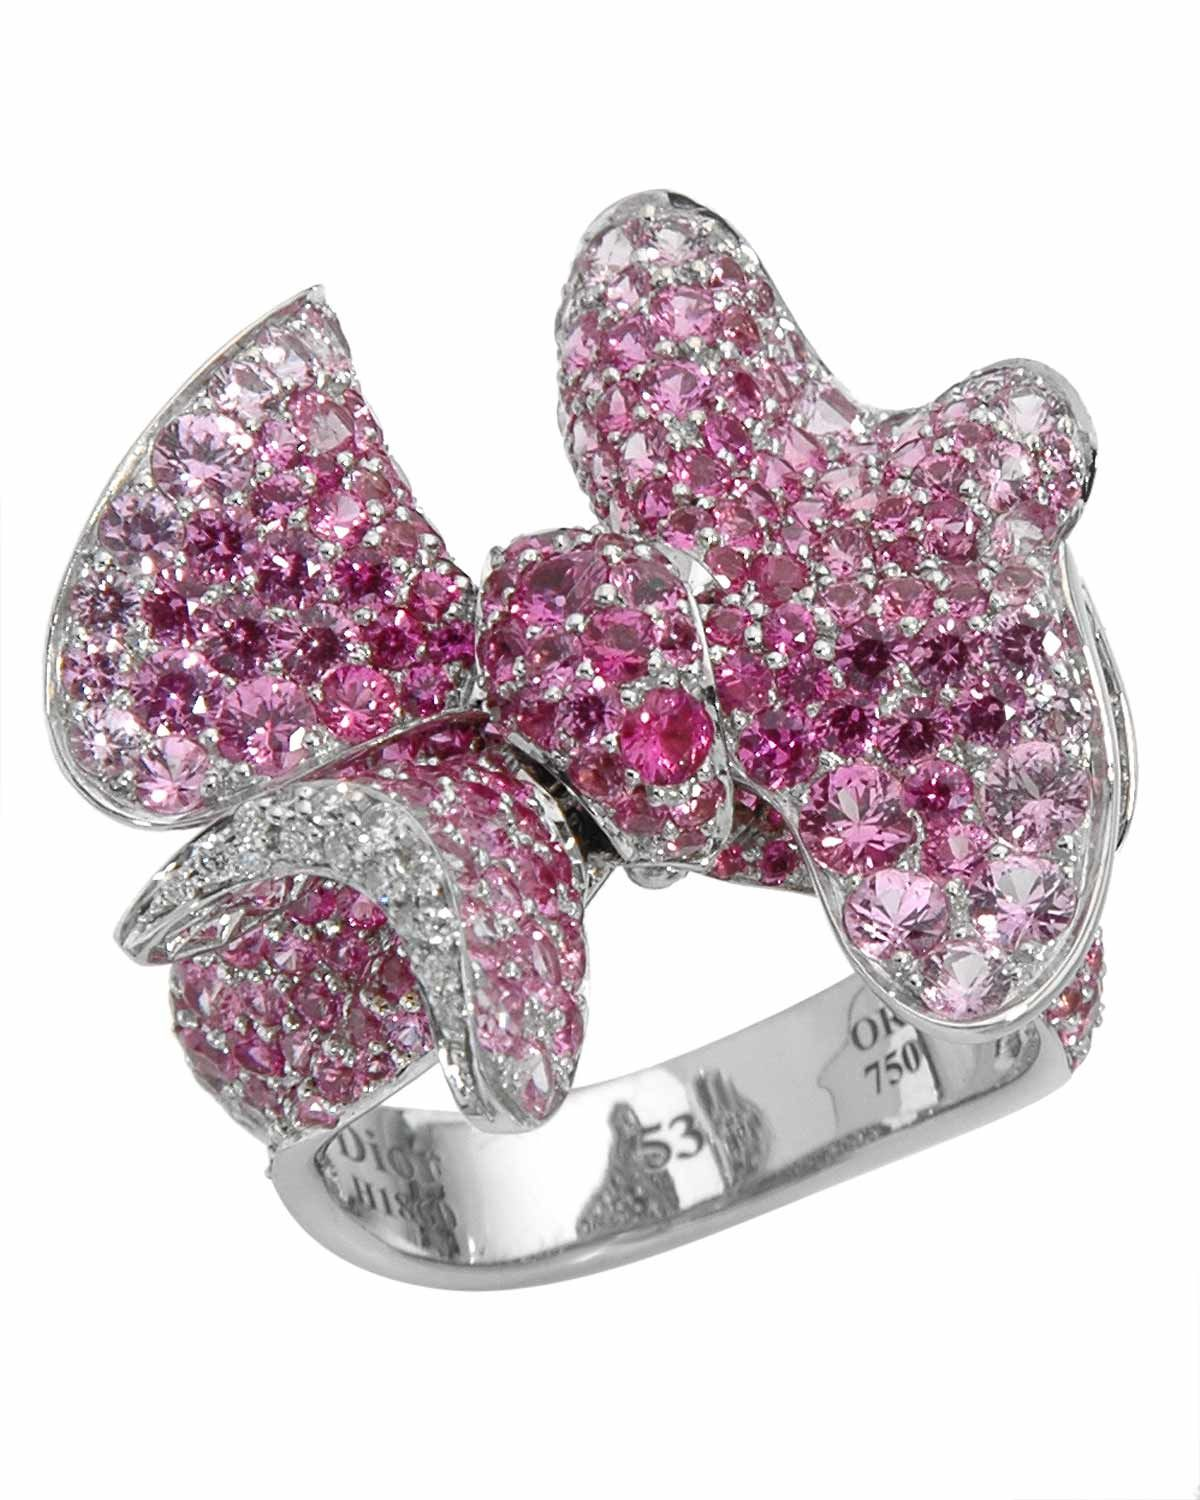 CHRISTIAN DIOR Made In France Ring Designed In 18K White Gold